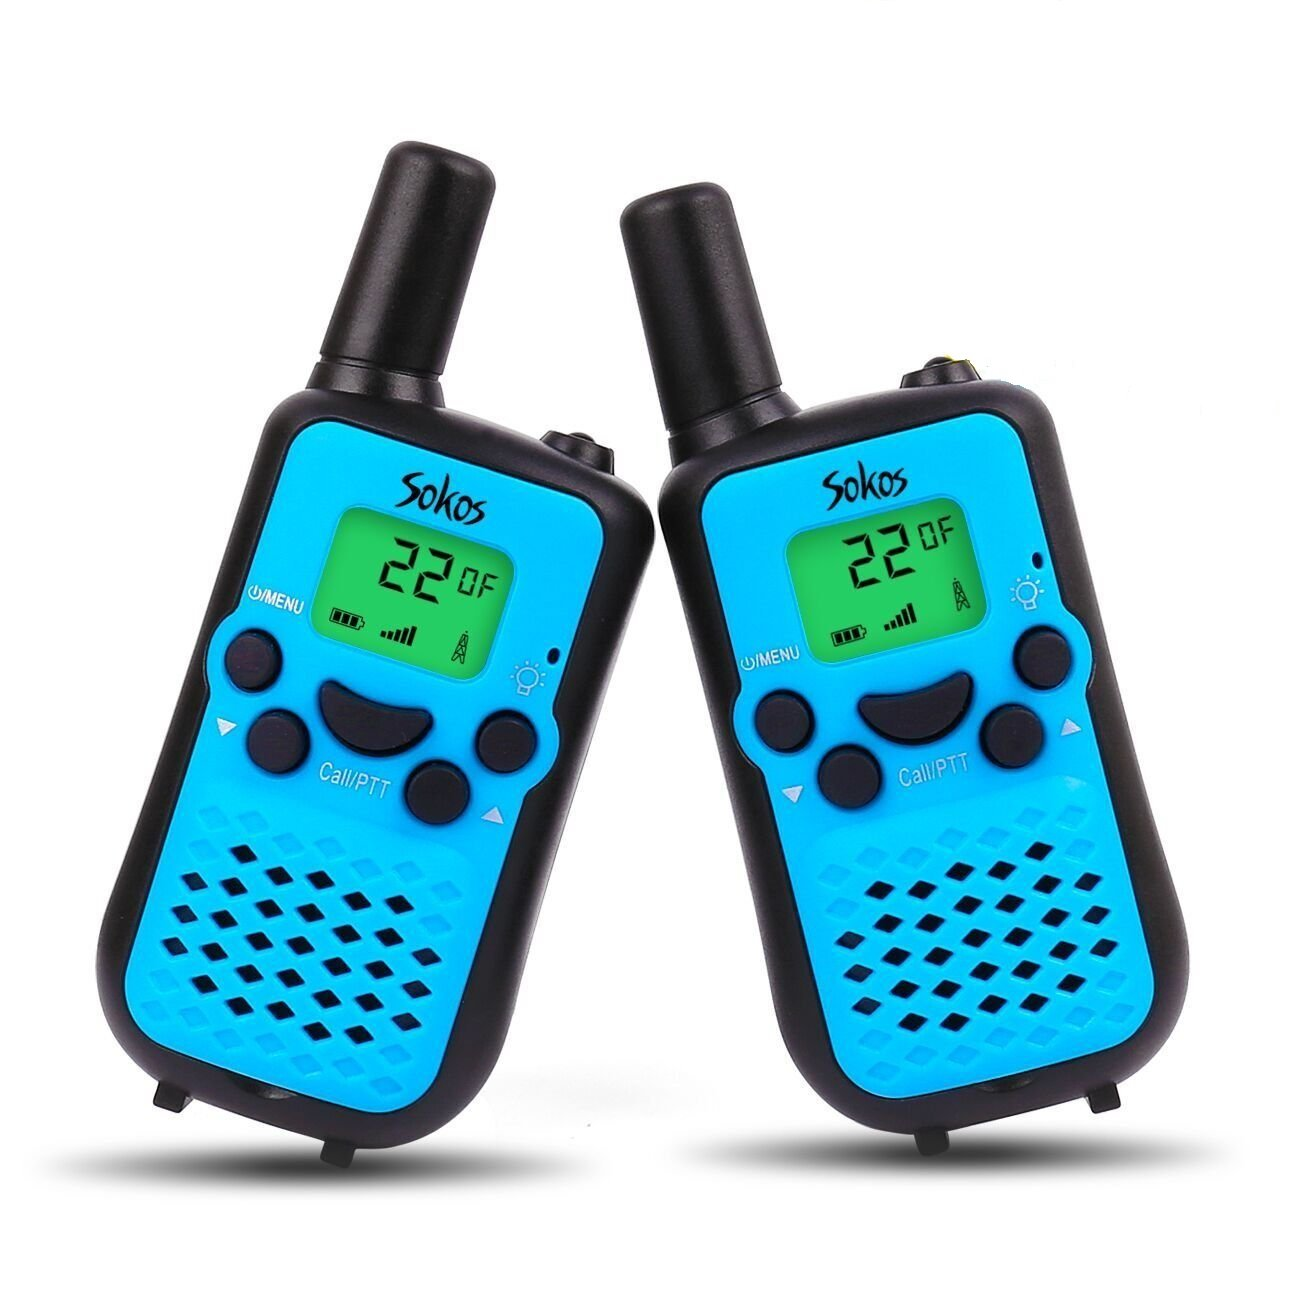 Walkie Talkies for Kids, 22 Channel Walkie Talkies 2 Way Radio 3 Miles (Up to 5Miles) Handheld Mini Walkie Talkies for Kids, Toys for 5-Year Old Boys and Girls, Ideal Present for Children by Dr.fasting (Image #1)